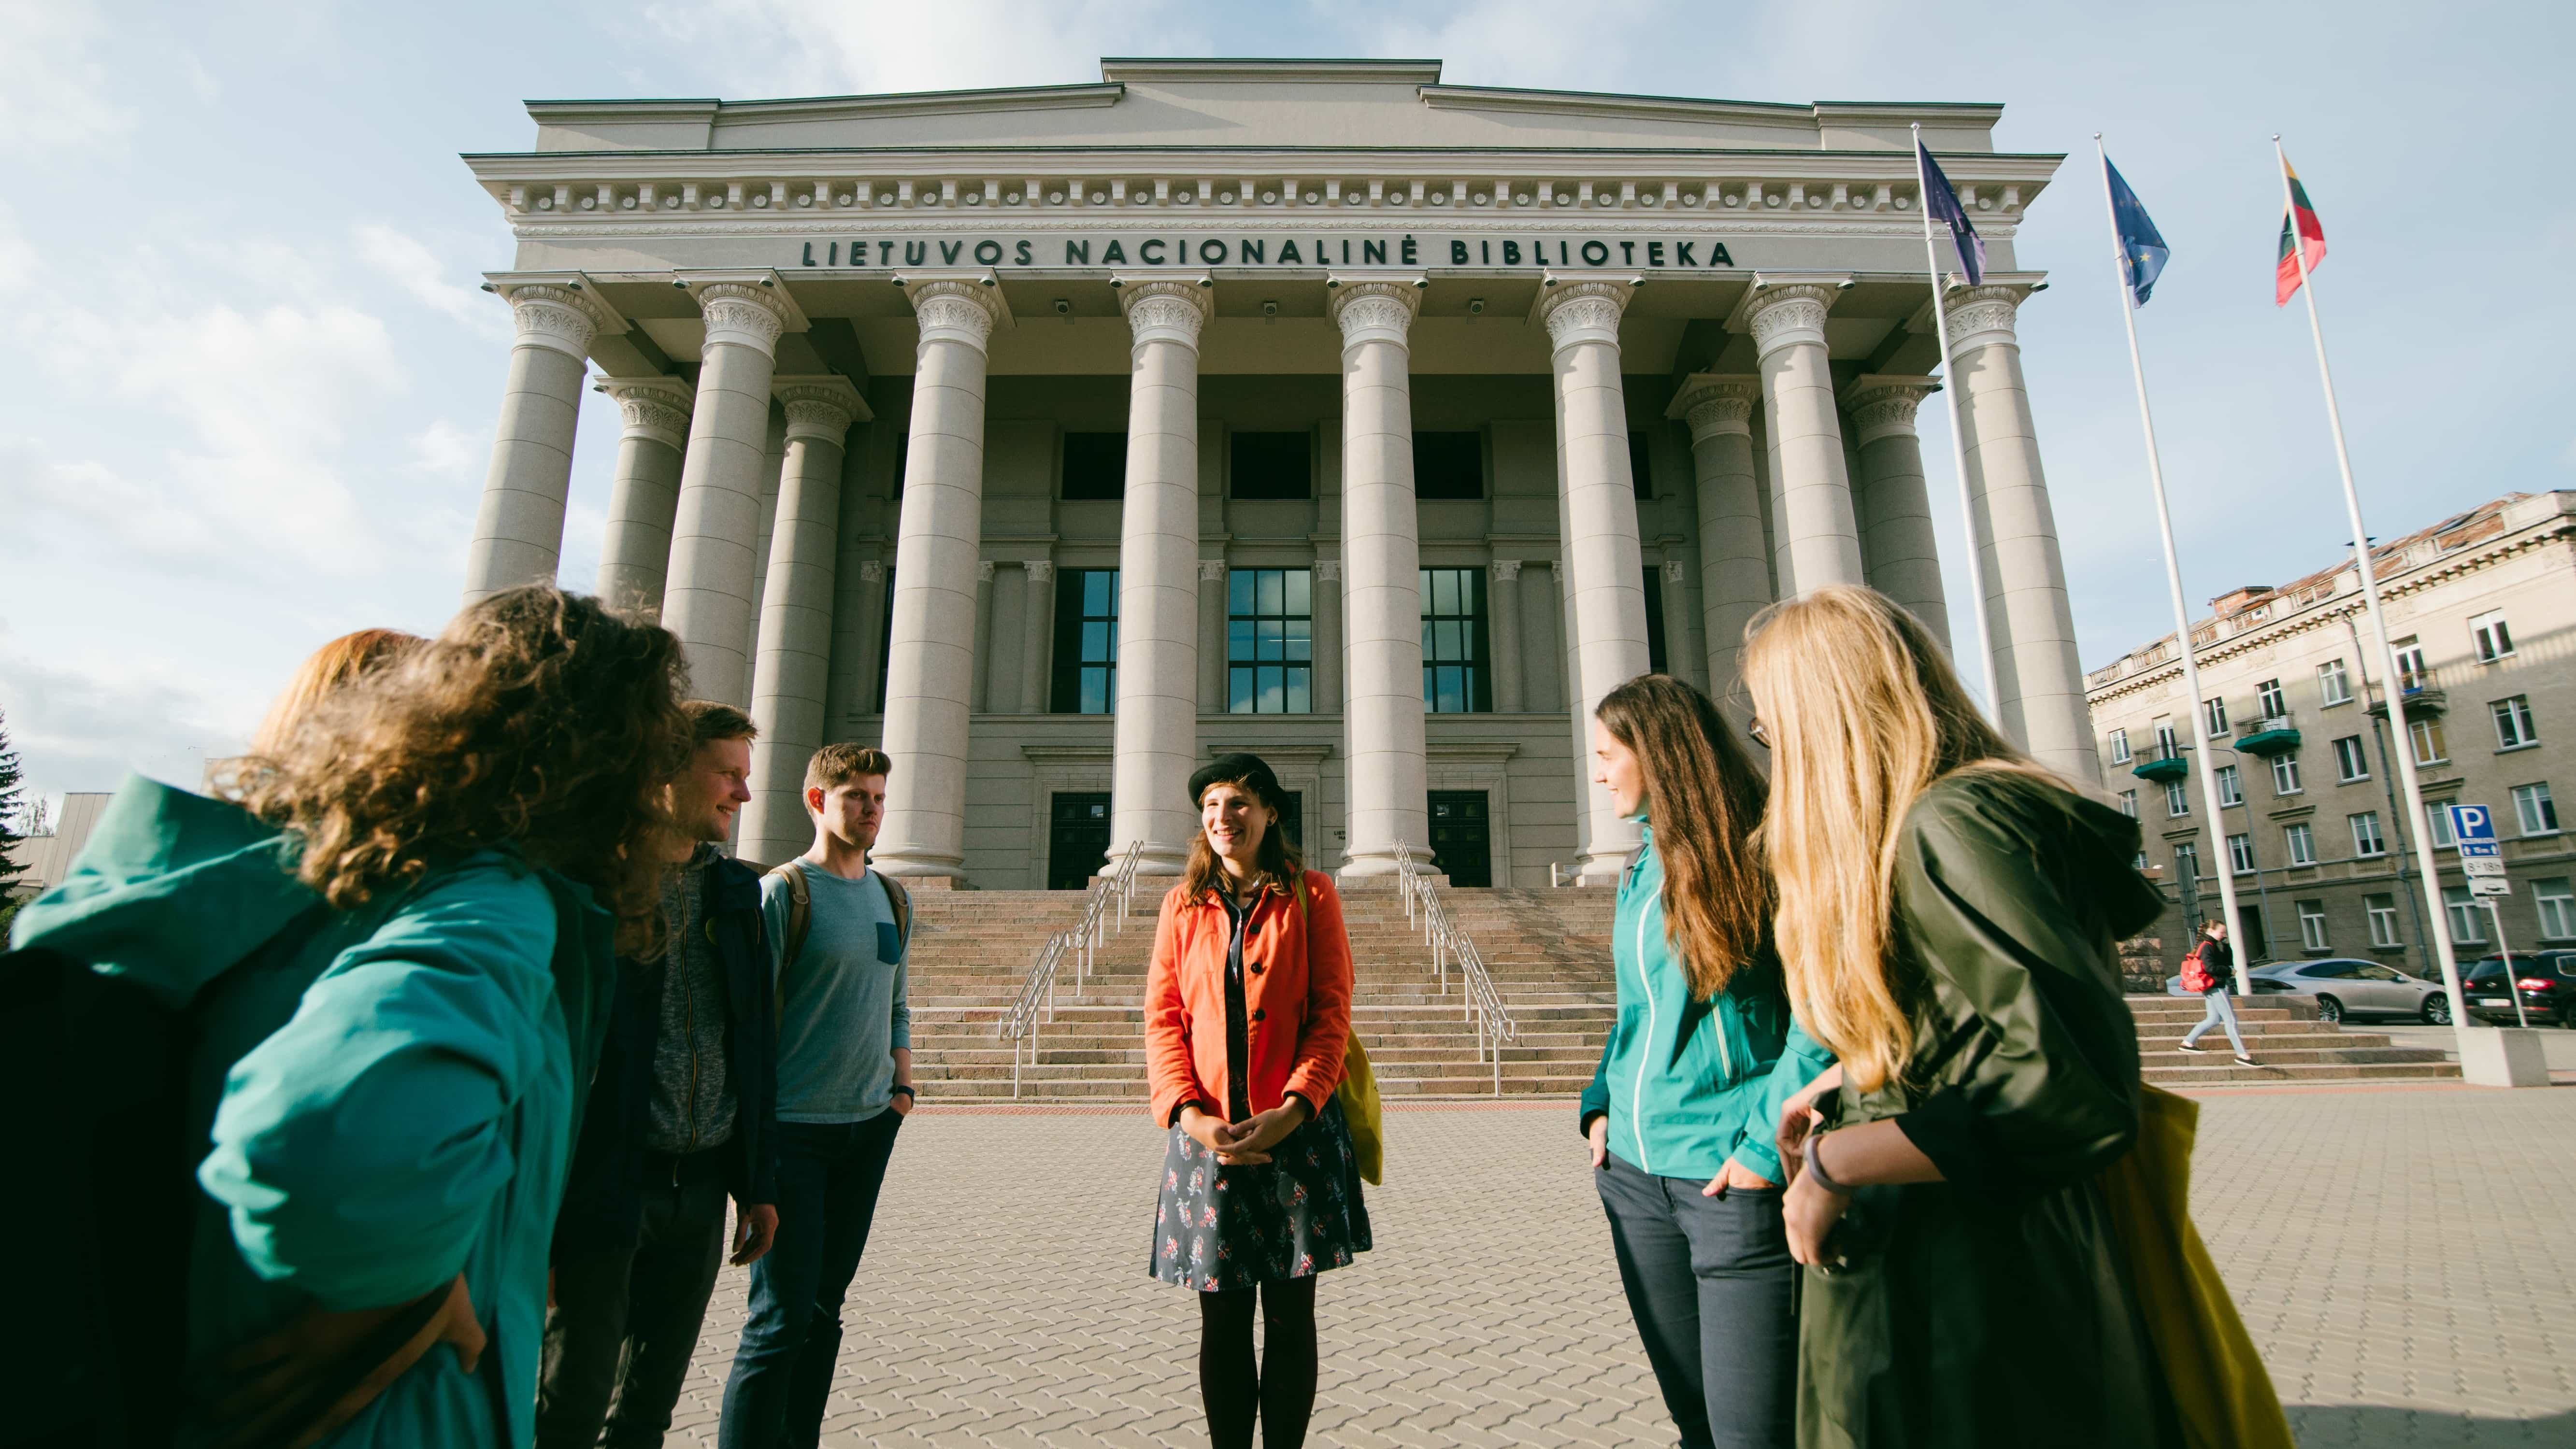 Tourists on Vilnius city tour in front of Lithuanian National Library